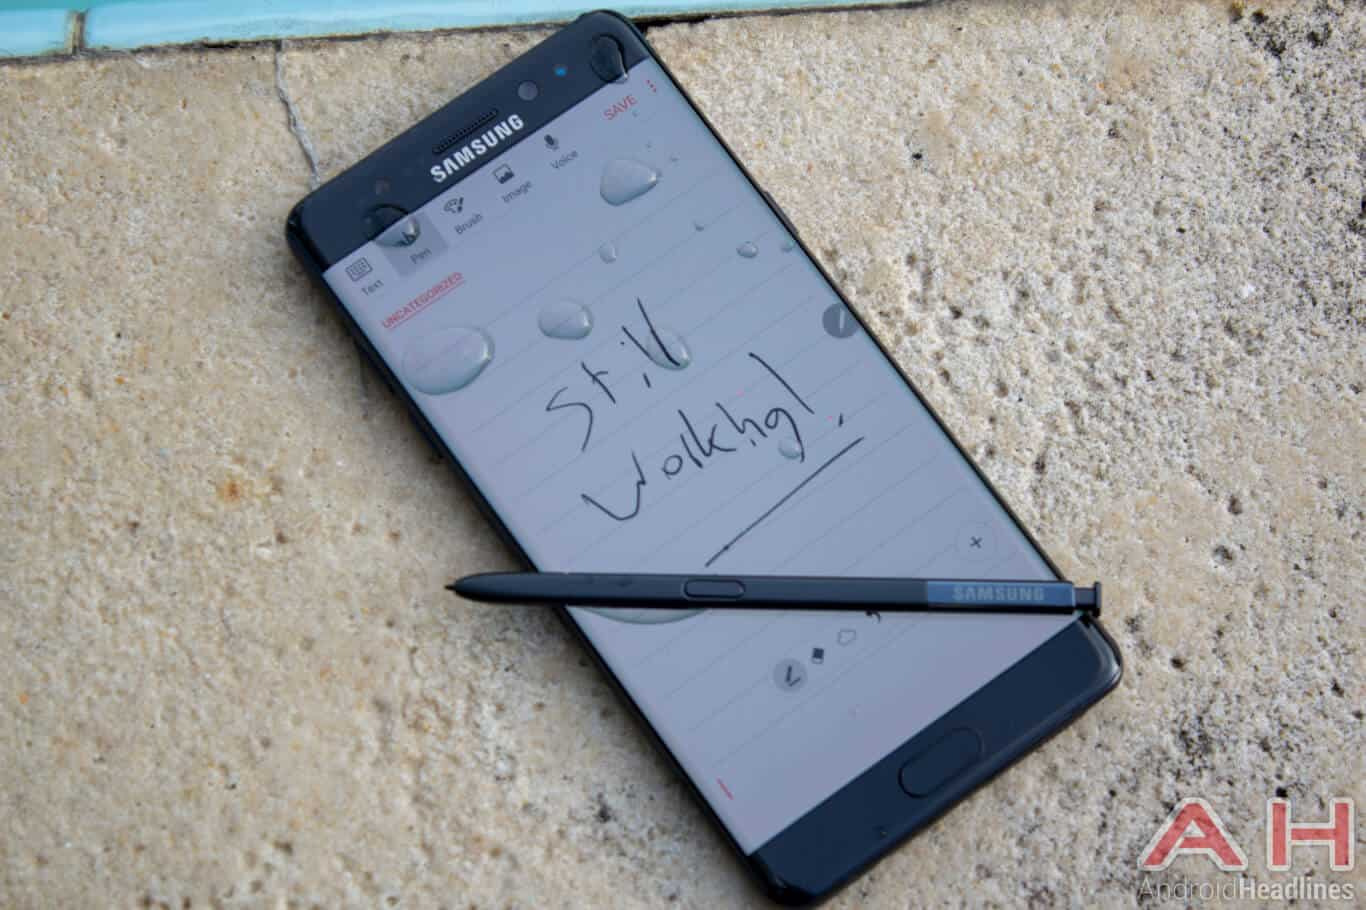 Samsung Galaxy Note 7 AH NS 01 s pen waterproof